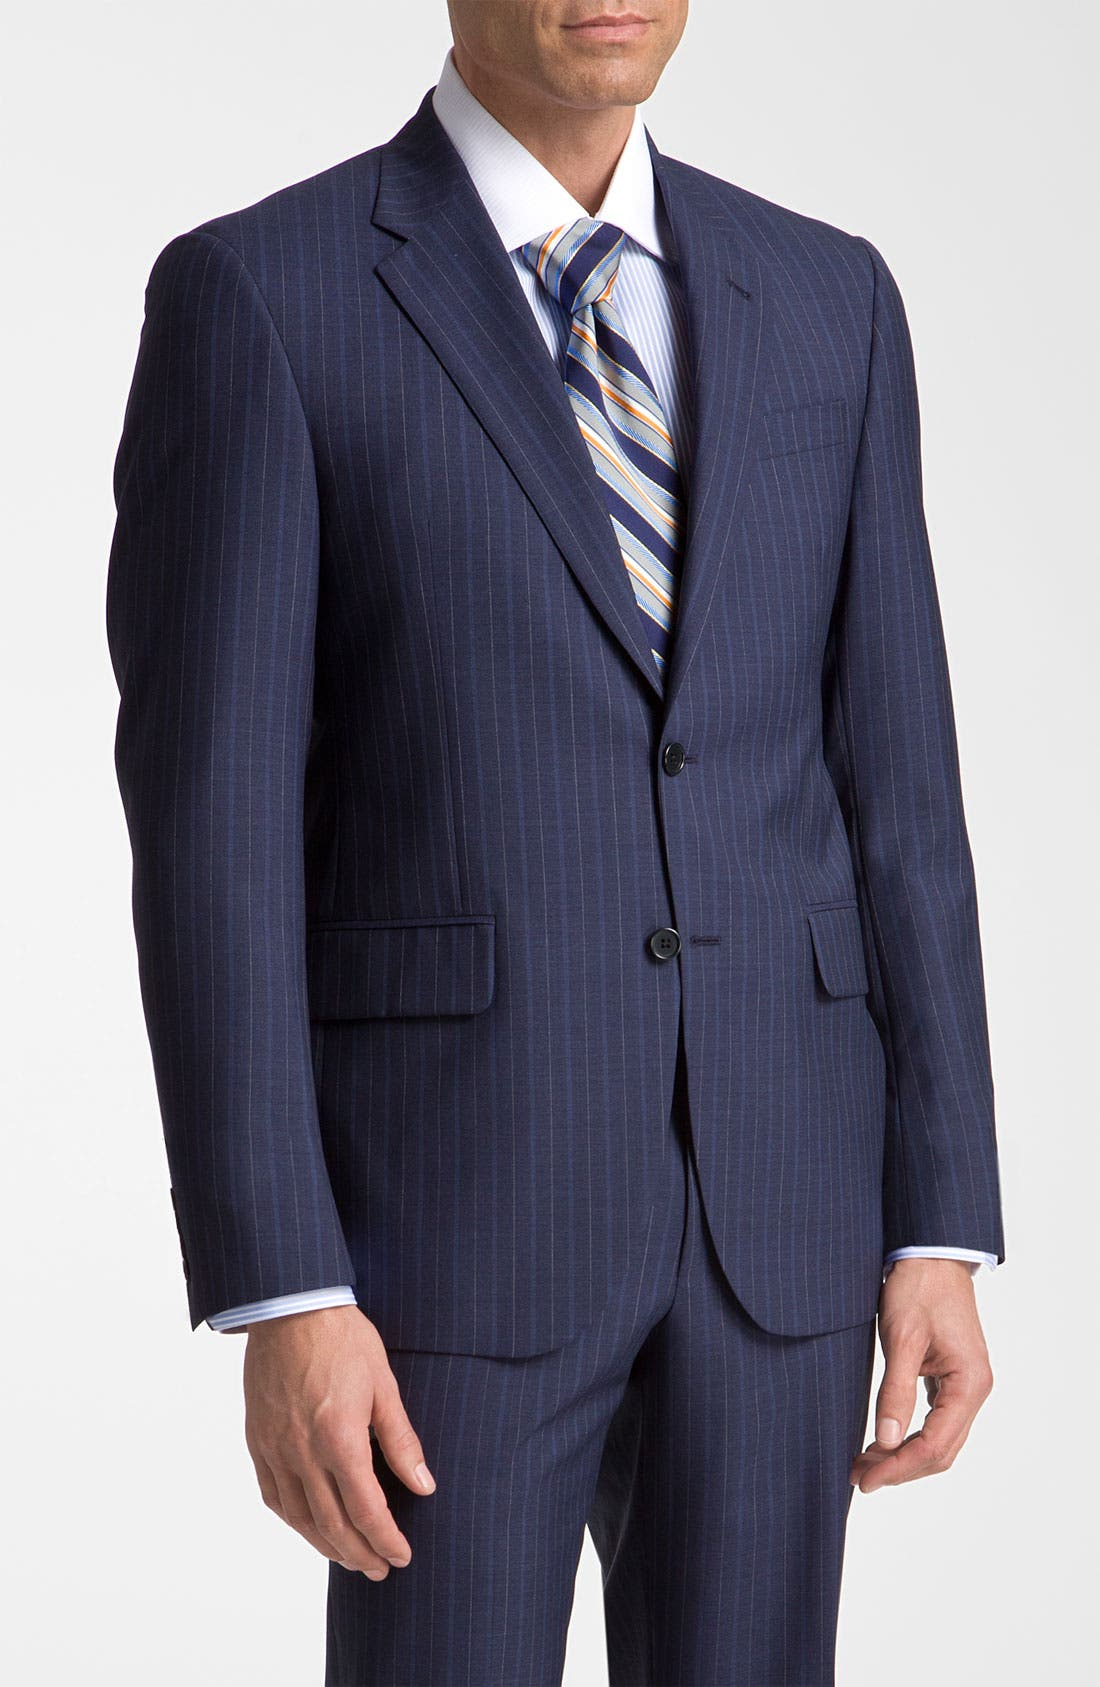 Main Image - Robert Talbott Navy Pinstripe Wool Suit